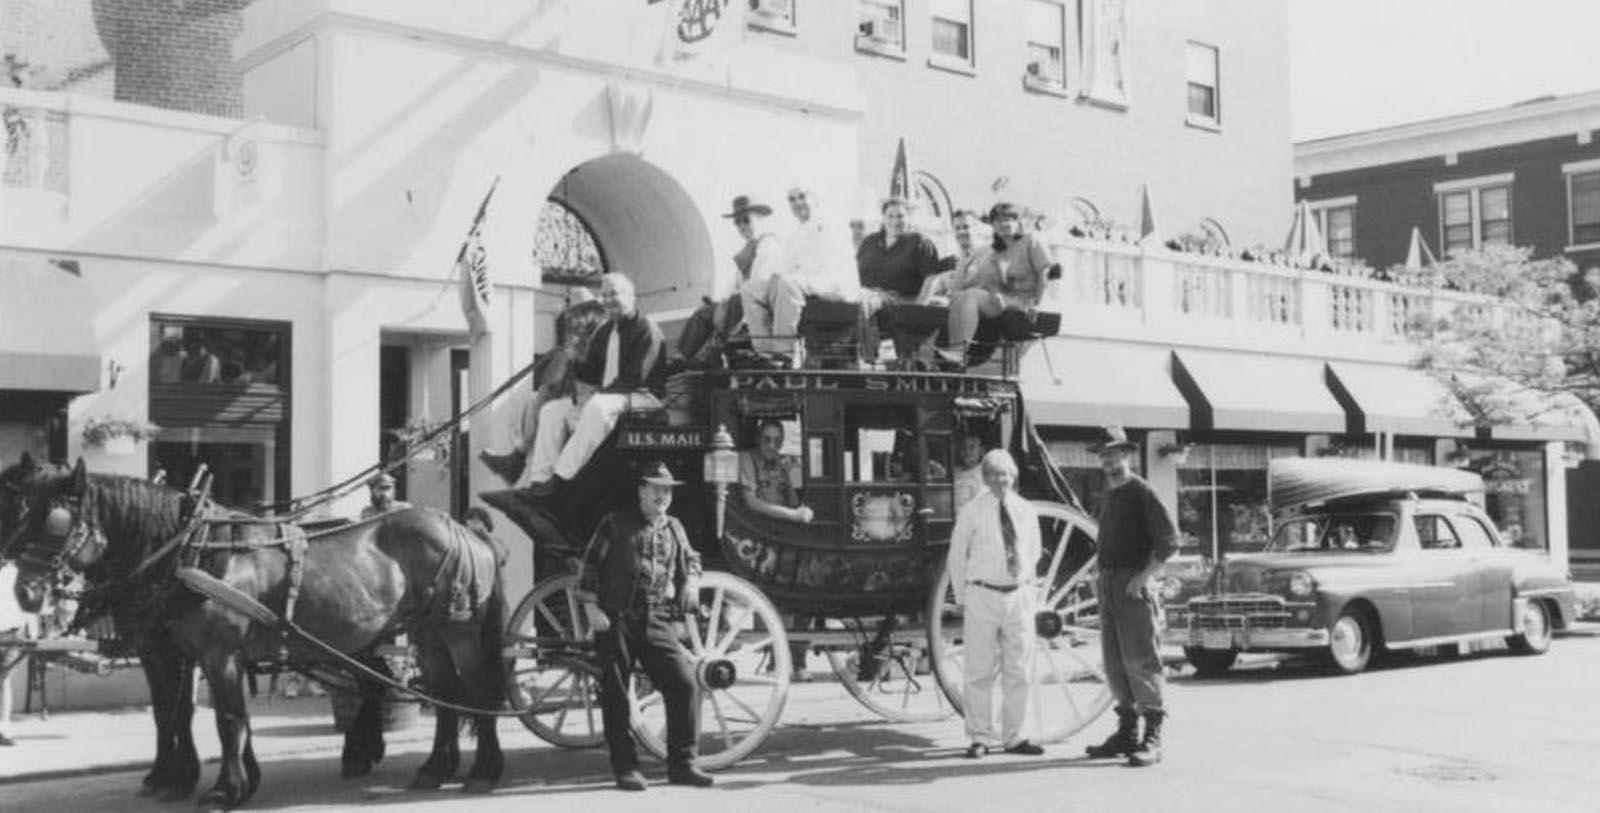 Image of Historic Exterior & Horse-Drawn Carriage, Hotel Saranac, Curio Collection by Hilton in Saranac Lake, New York, 1927, Member of Historic Hotels of America, Discover